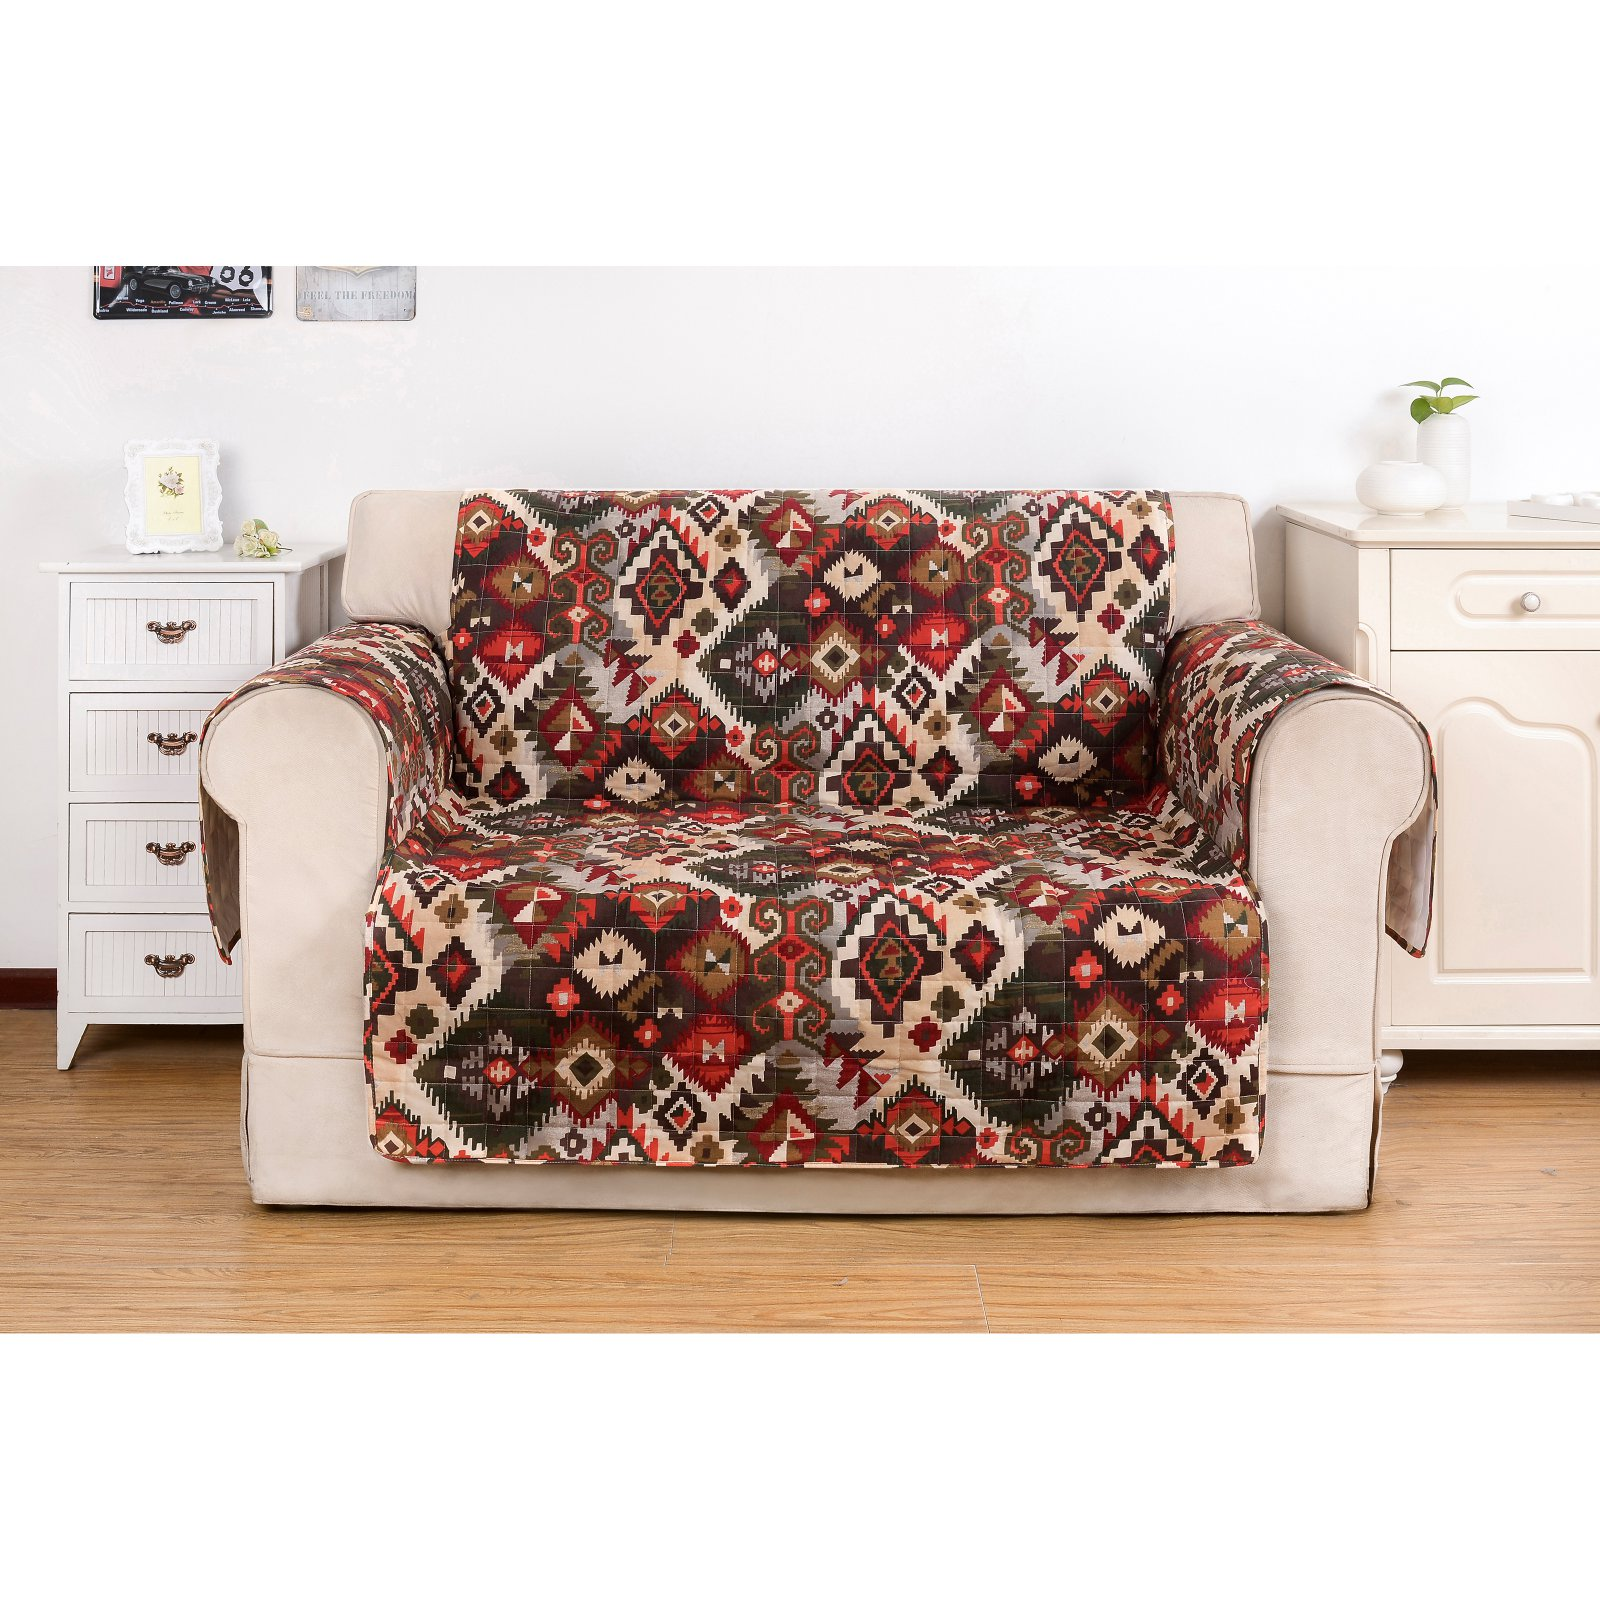 Greenland Home Fashions Folk Festival Loveseat Furniture Protector